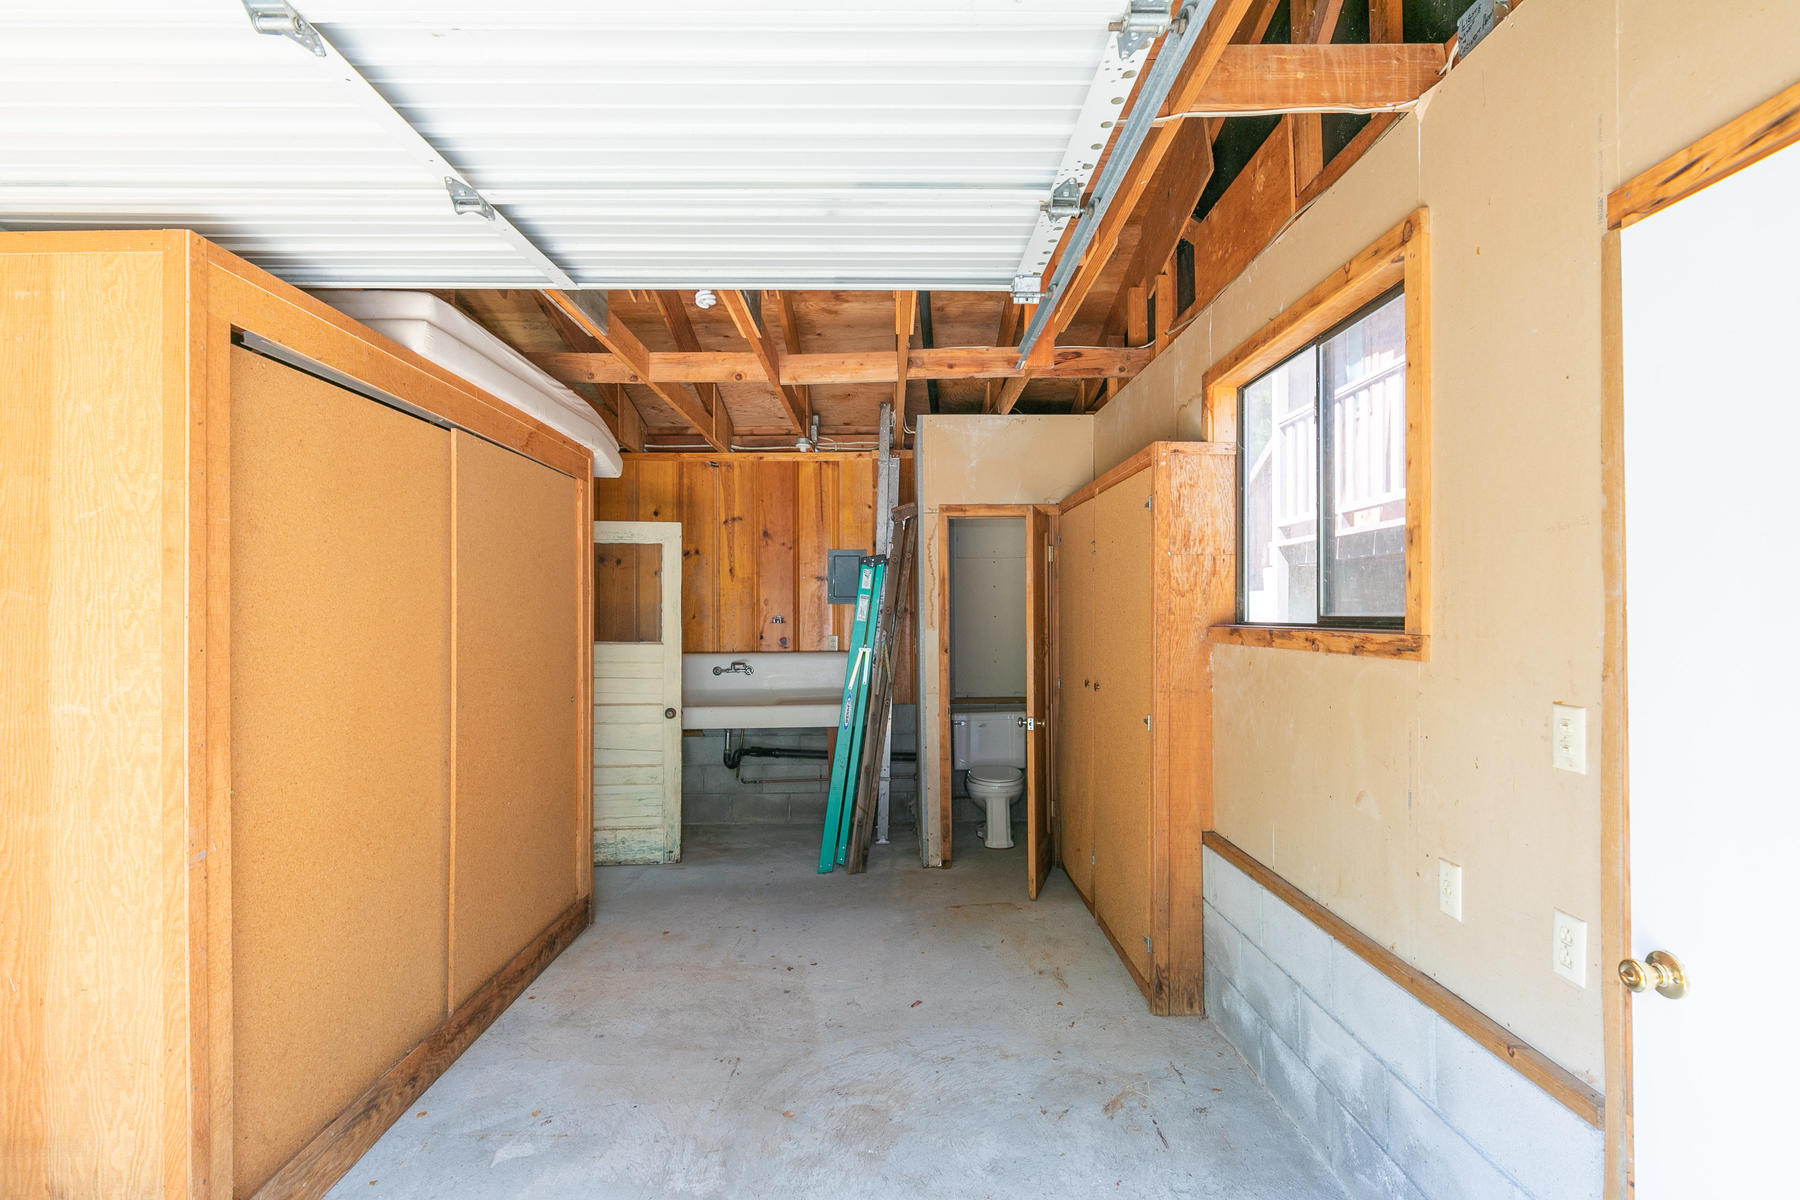 Additional photo for property listing at Live Work Opportunity 211 & 209 Main Street Sierra City, California 96125 United States